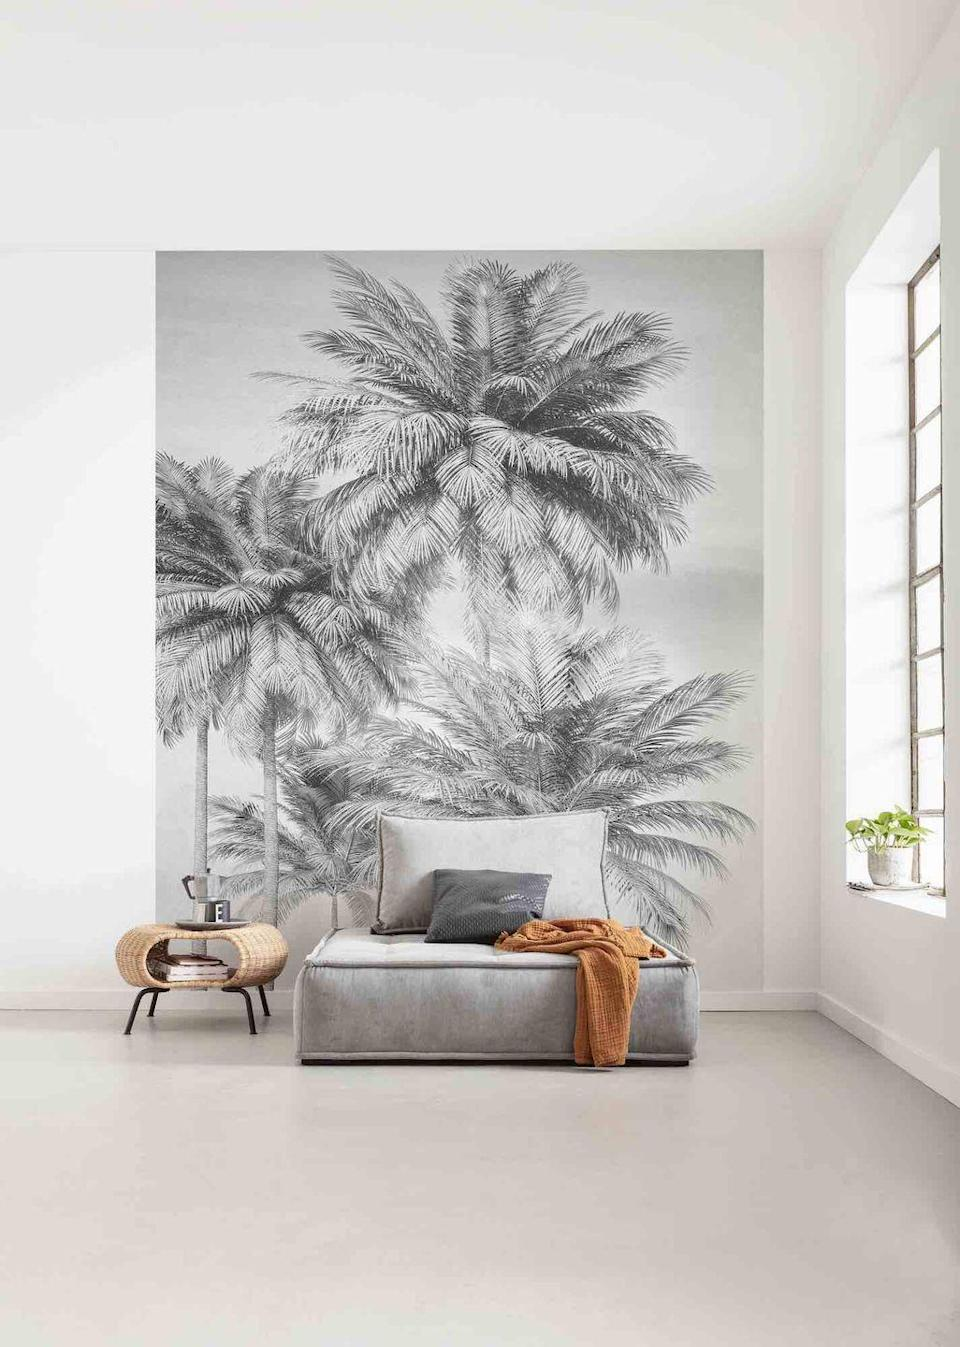 """<p>In a big open area like a loft-style living room, zone the space with a huge mural. Although it's large, it's quite calming due to the grey and white monochrome palette and simple design – it looks like a painting.</p><p>Top Tip: Murals are so versatile as they can be made to any size. </p><p>Pictured: Miami Palms Mural Wallpaper, <a href=""""https://www.foresthomesstore.com/products/miami-palms-mural-wallpaper"""" rel=""""nofollow noopener"""" target=""""_blank"""" data-ylk=""""slk:Forest Homes"""" class=""""link rapid-noclick-resp"""">Forest Homes</a></p>"""